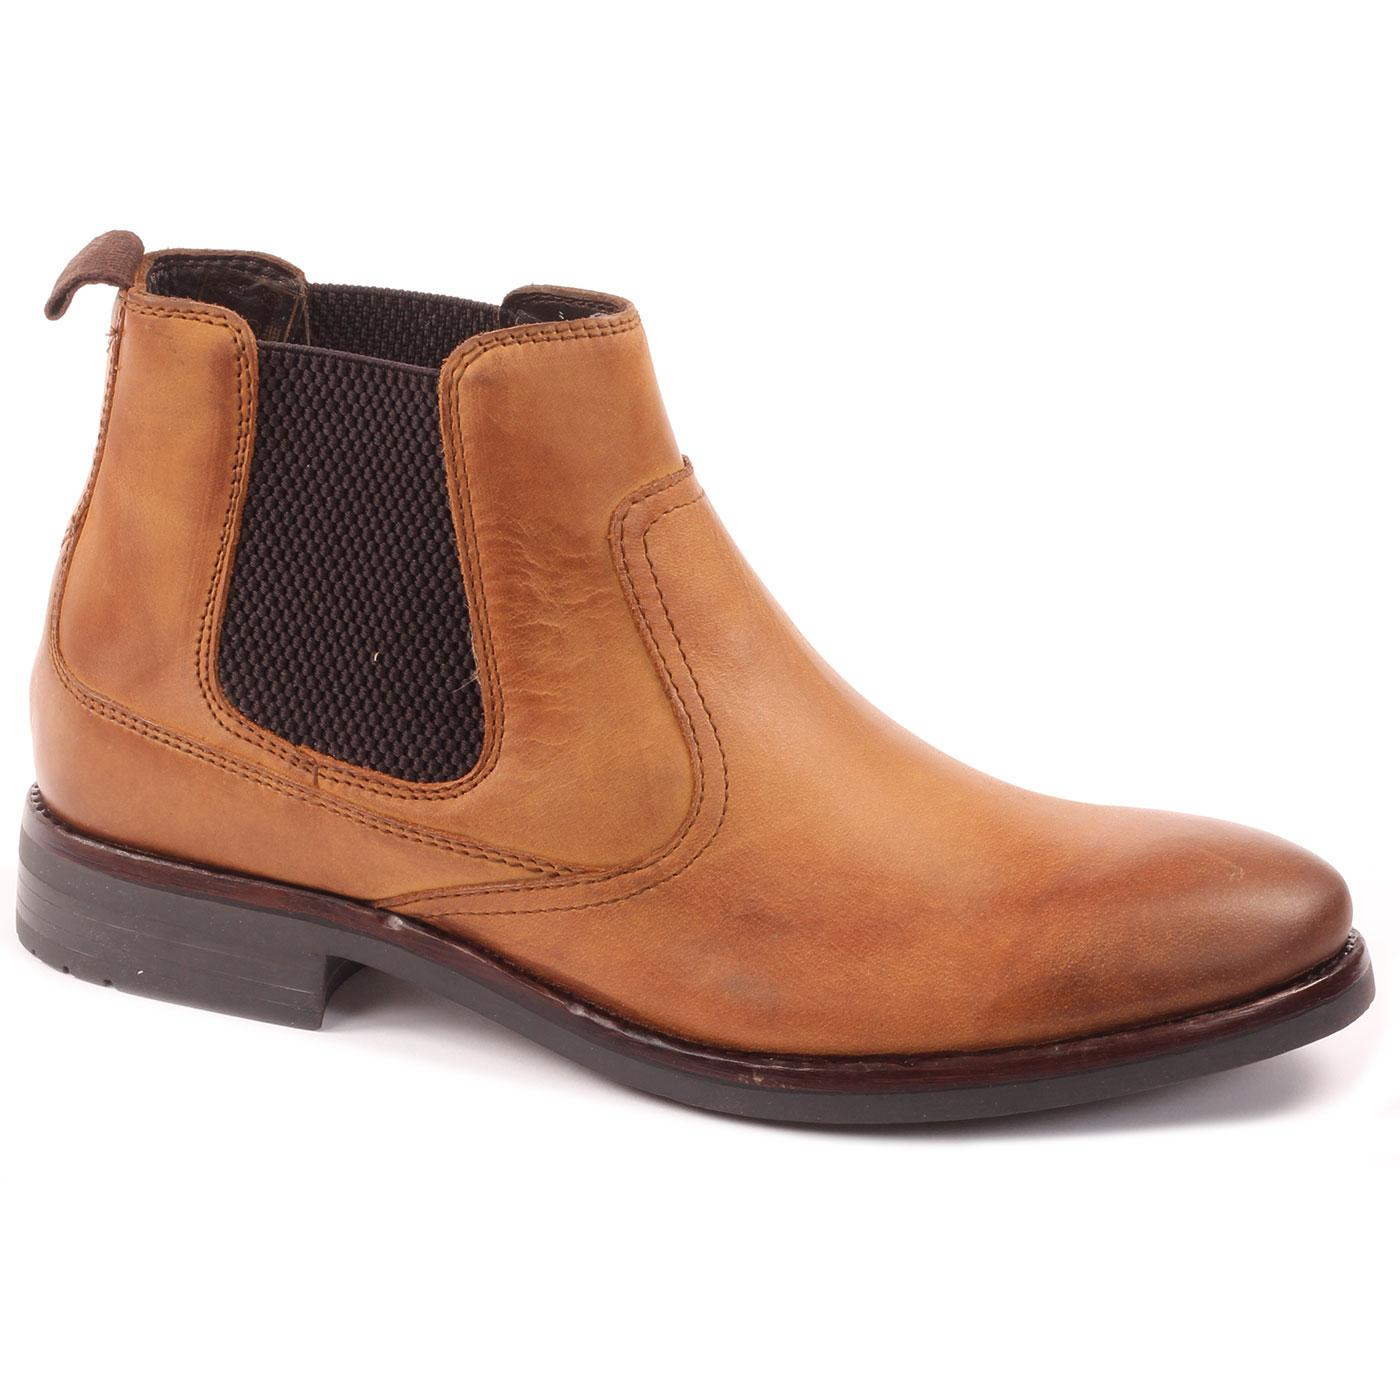 Clayton IKON Men's Retro Mod Chelsea Boots (Tan)